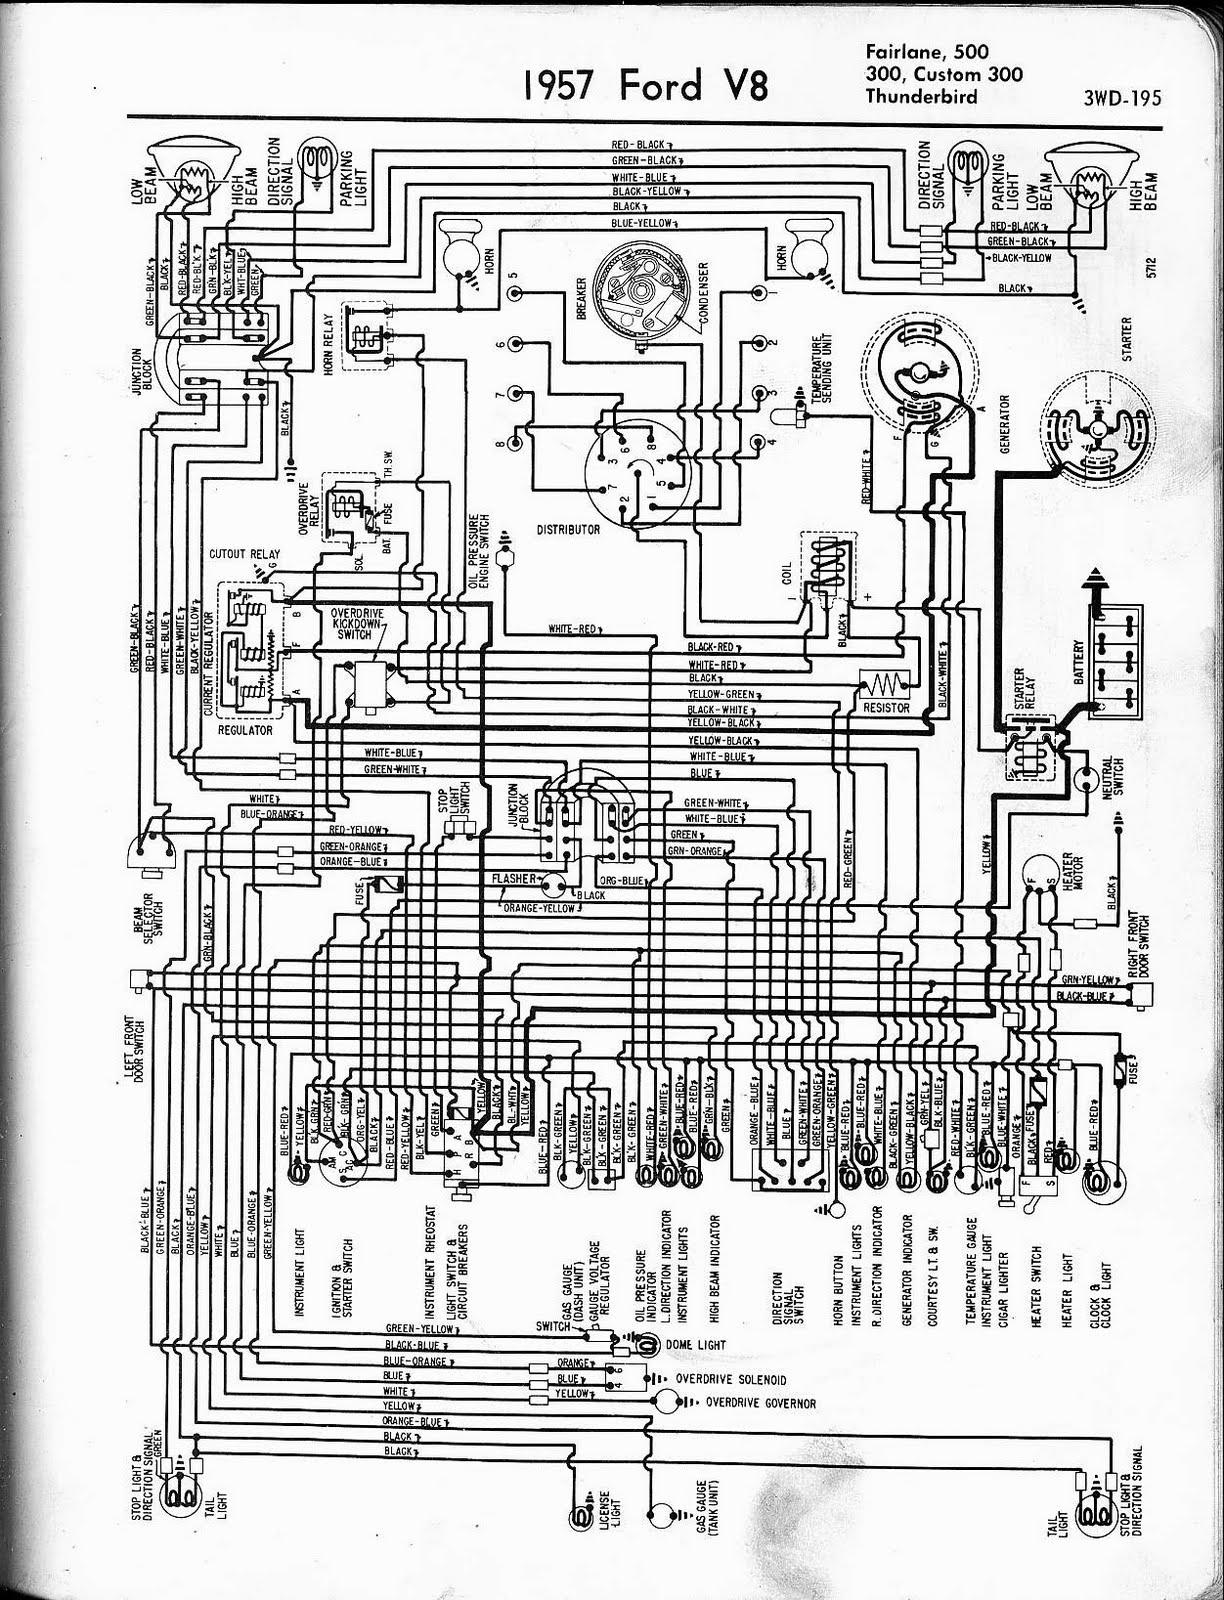 1966 Gmc Truck Wiring Diagrams Simple Guide About Diagram Ford Thunderbird Auto Free 1957 V8 Fairlane Custom300